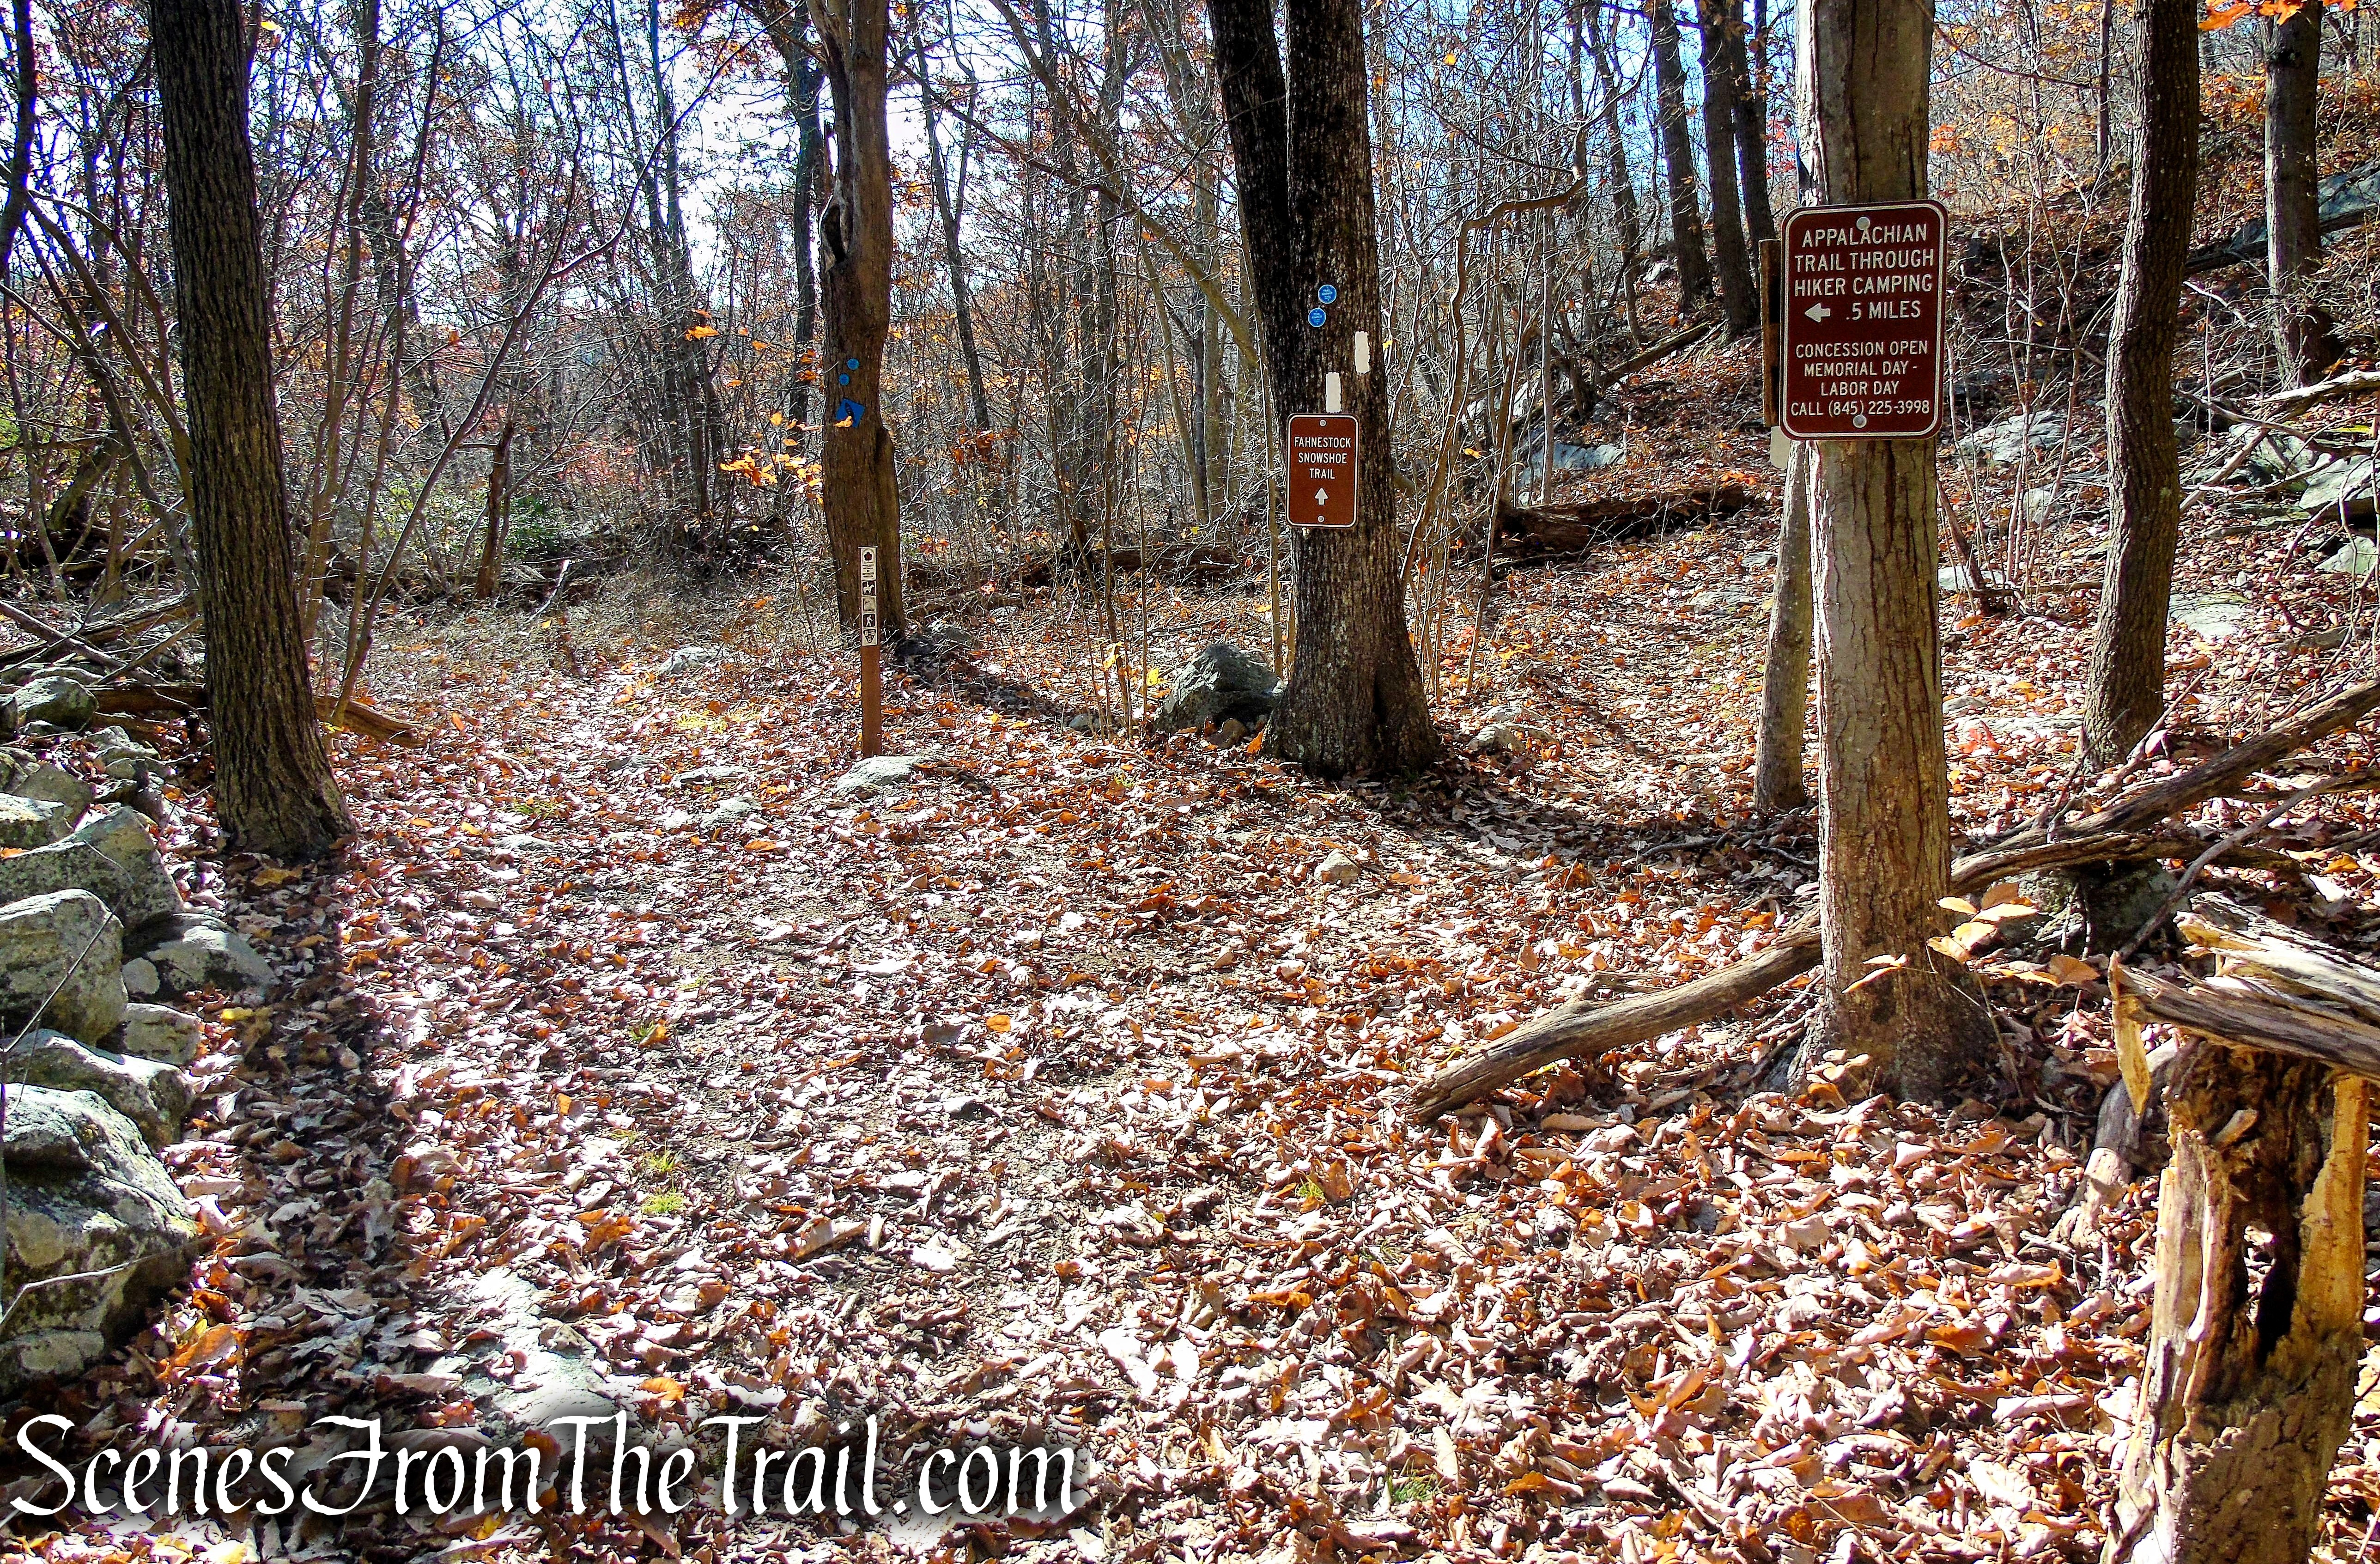 turn right to remain on Appalachian Trail